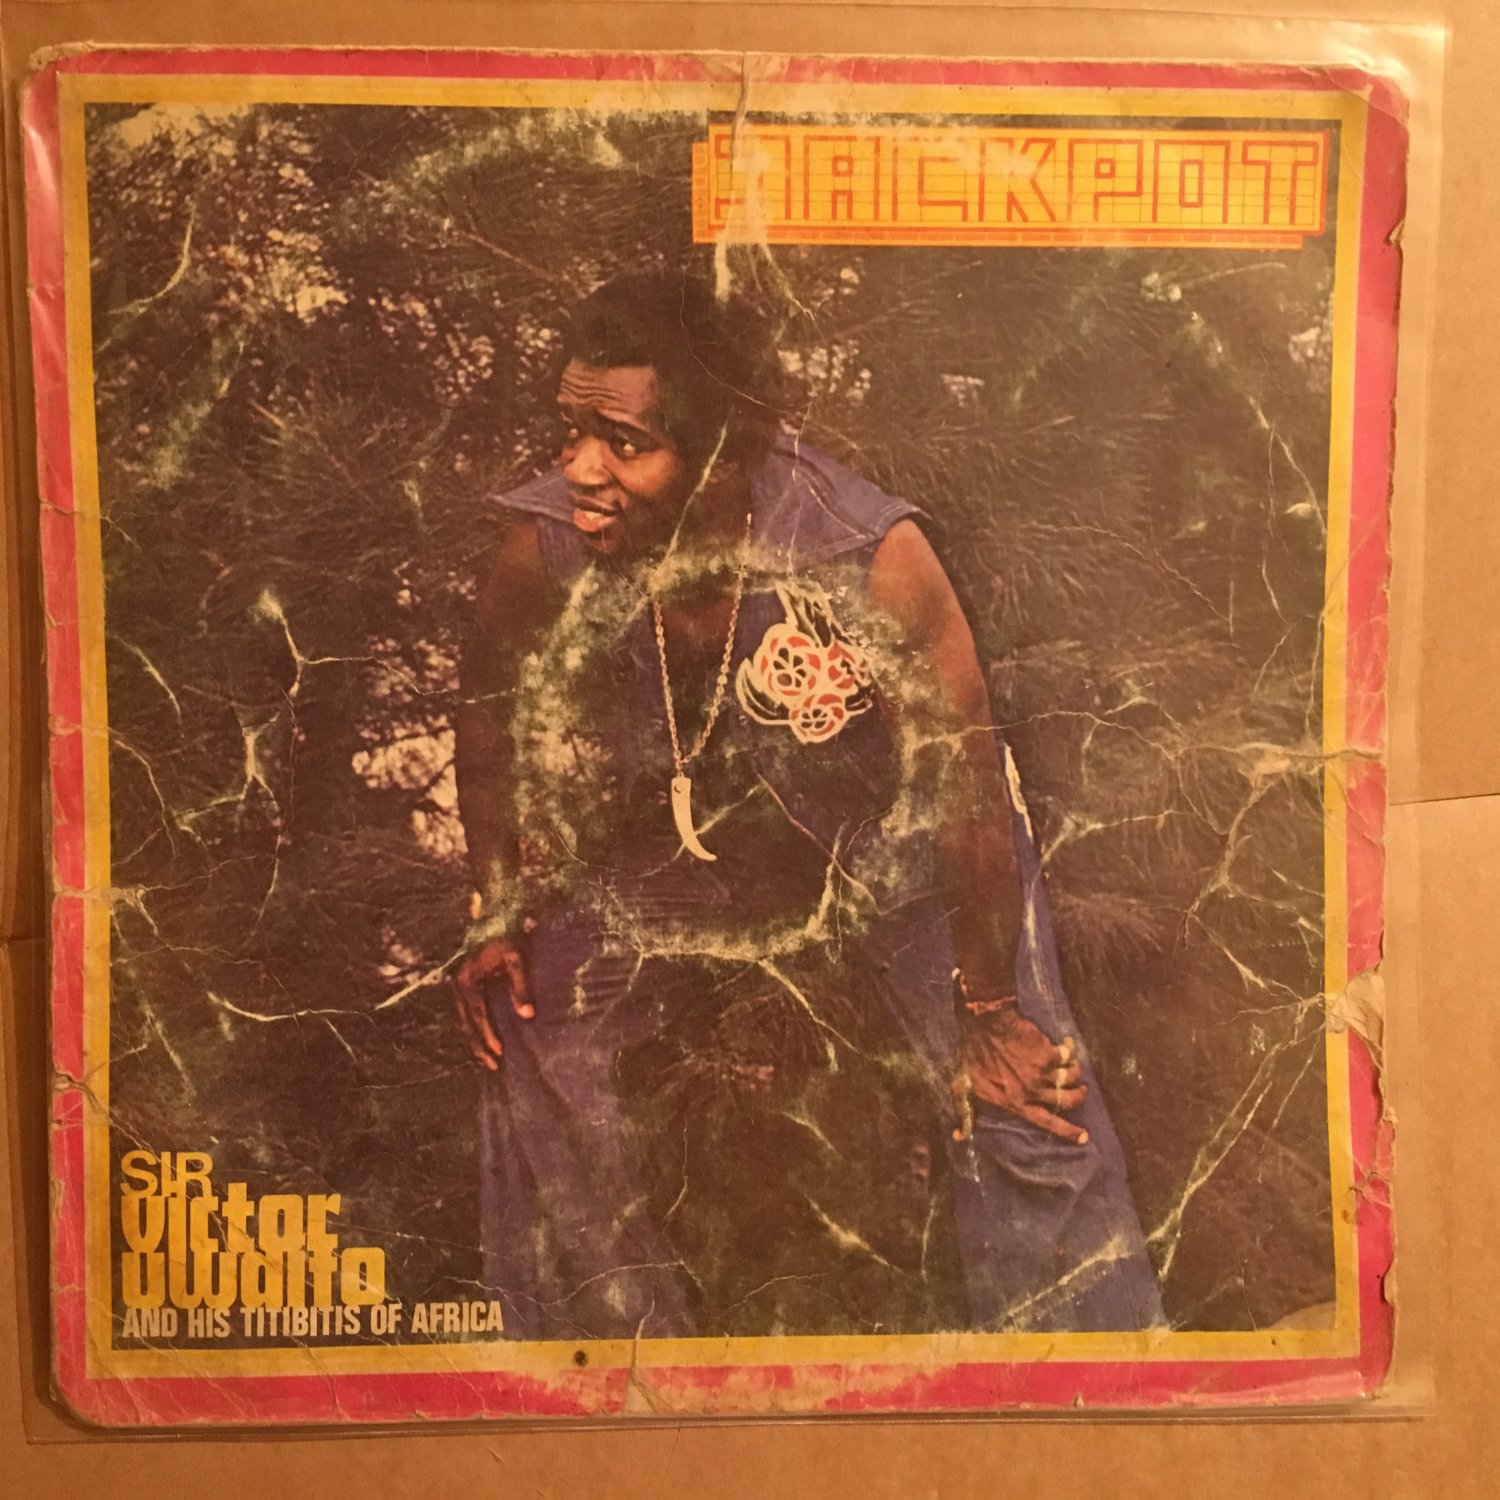 SIR VICTOR UWAIFO & HIS TITIBIS OF AFRICA LP jackpot AFRO FUNK PSYCH mp3 LISTEN